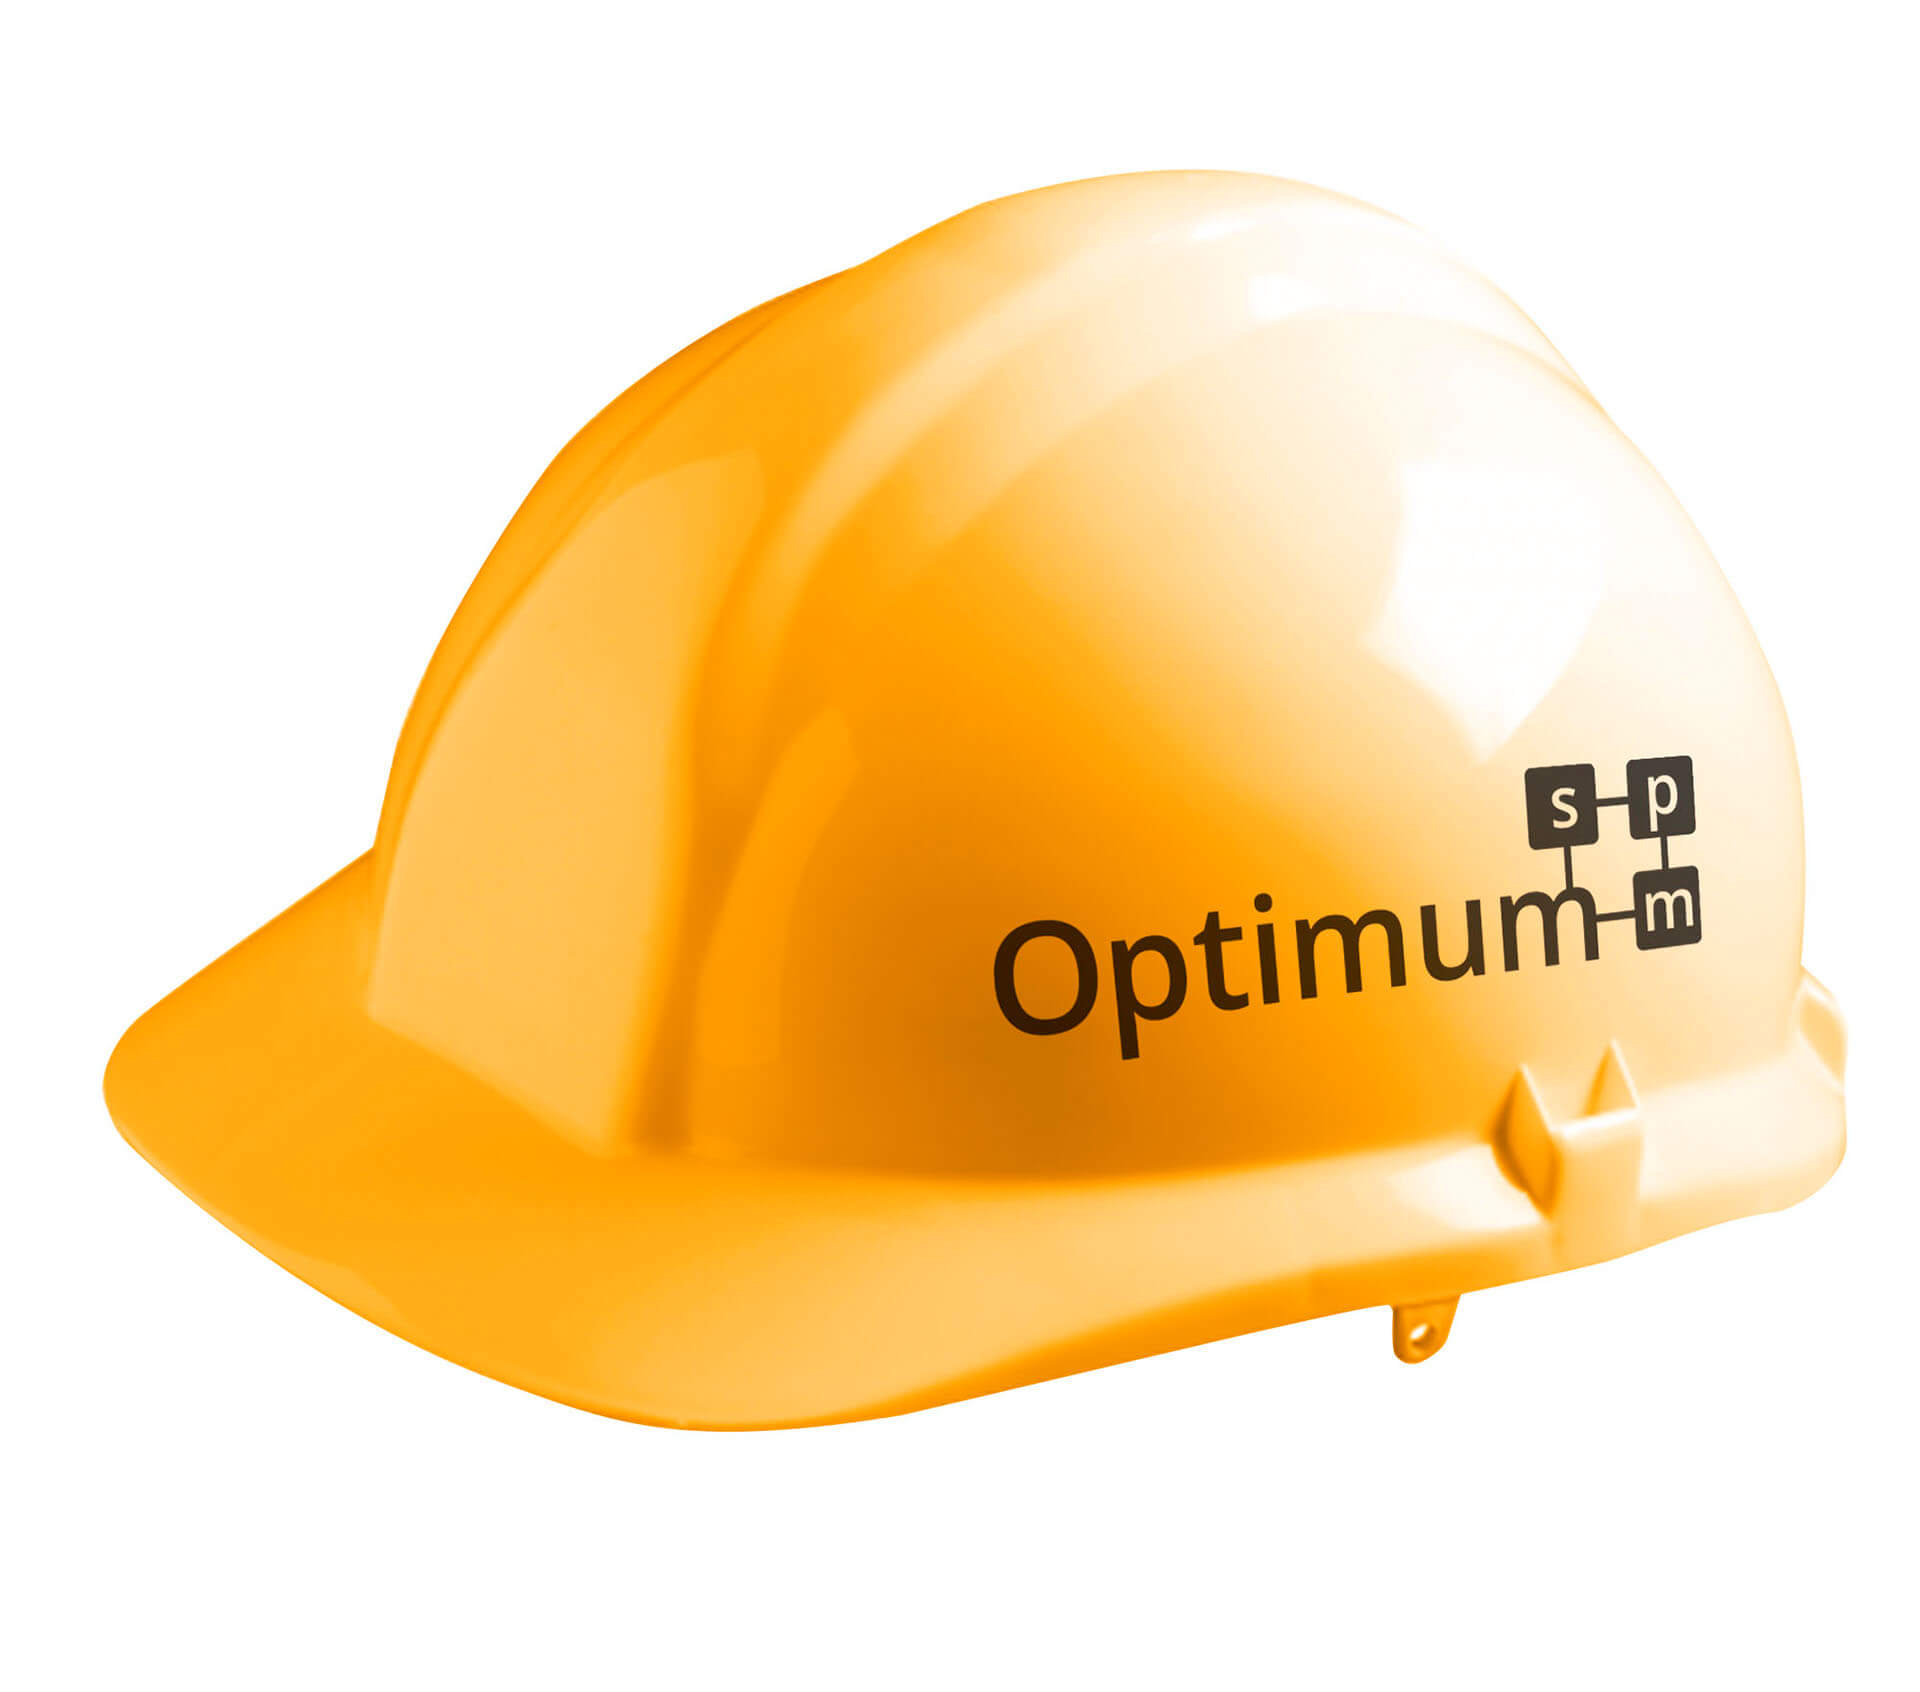 optimumspm_tasarim_7